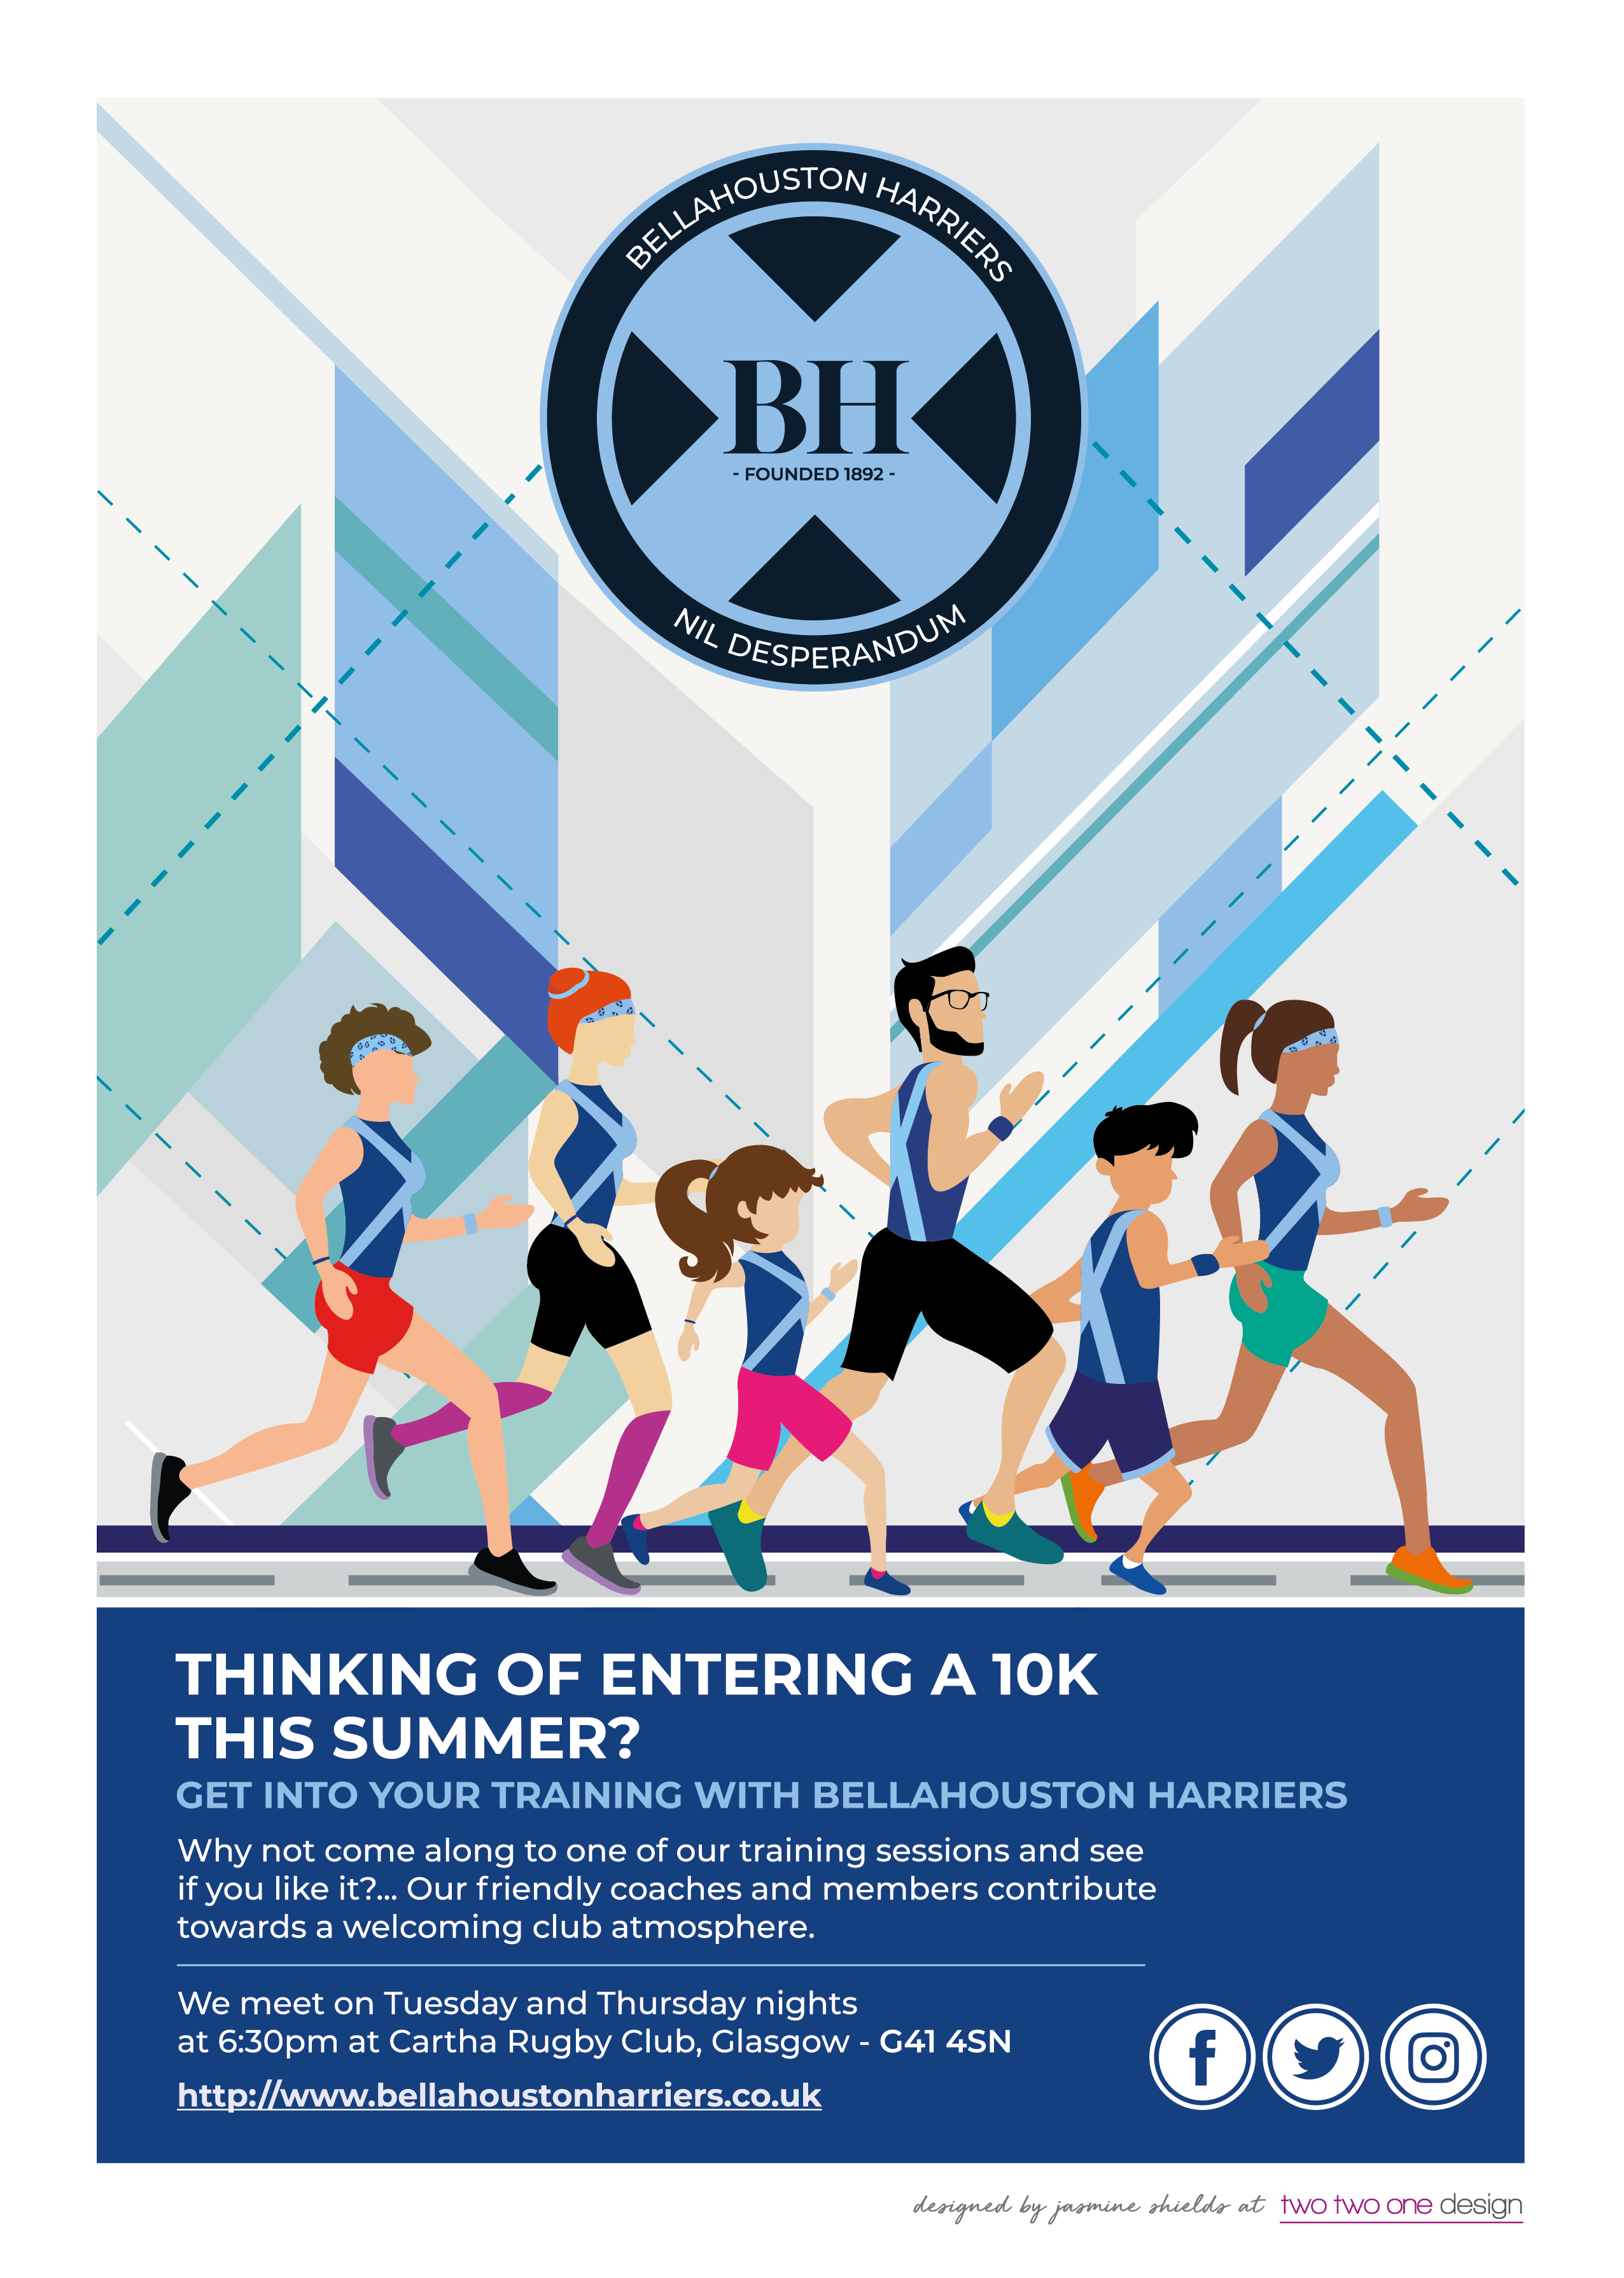 000134_bellahouston harriers_poster(SUMMER10K)_WEB.png